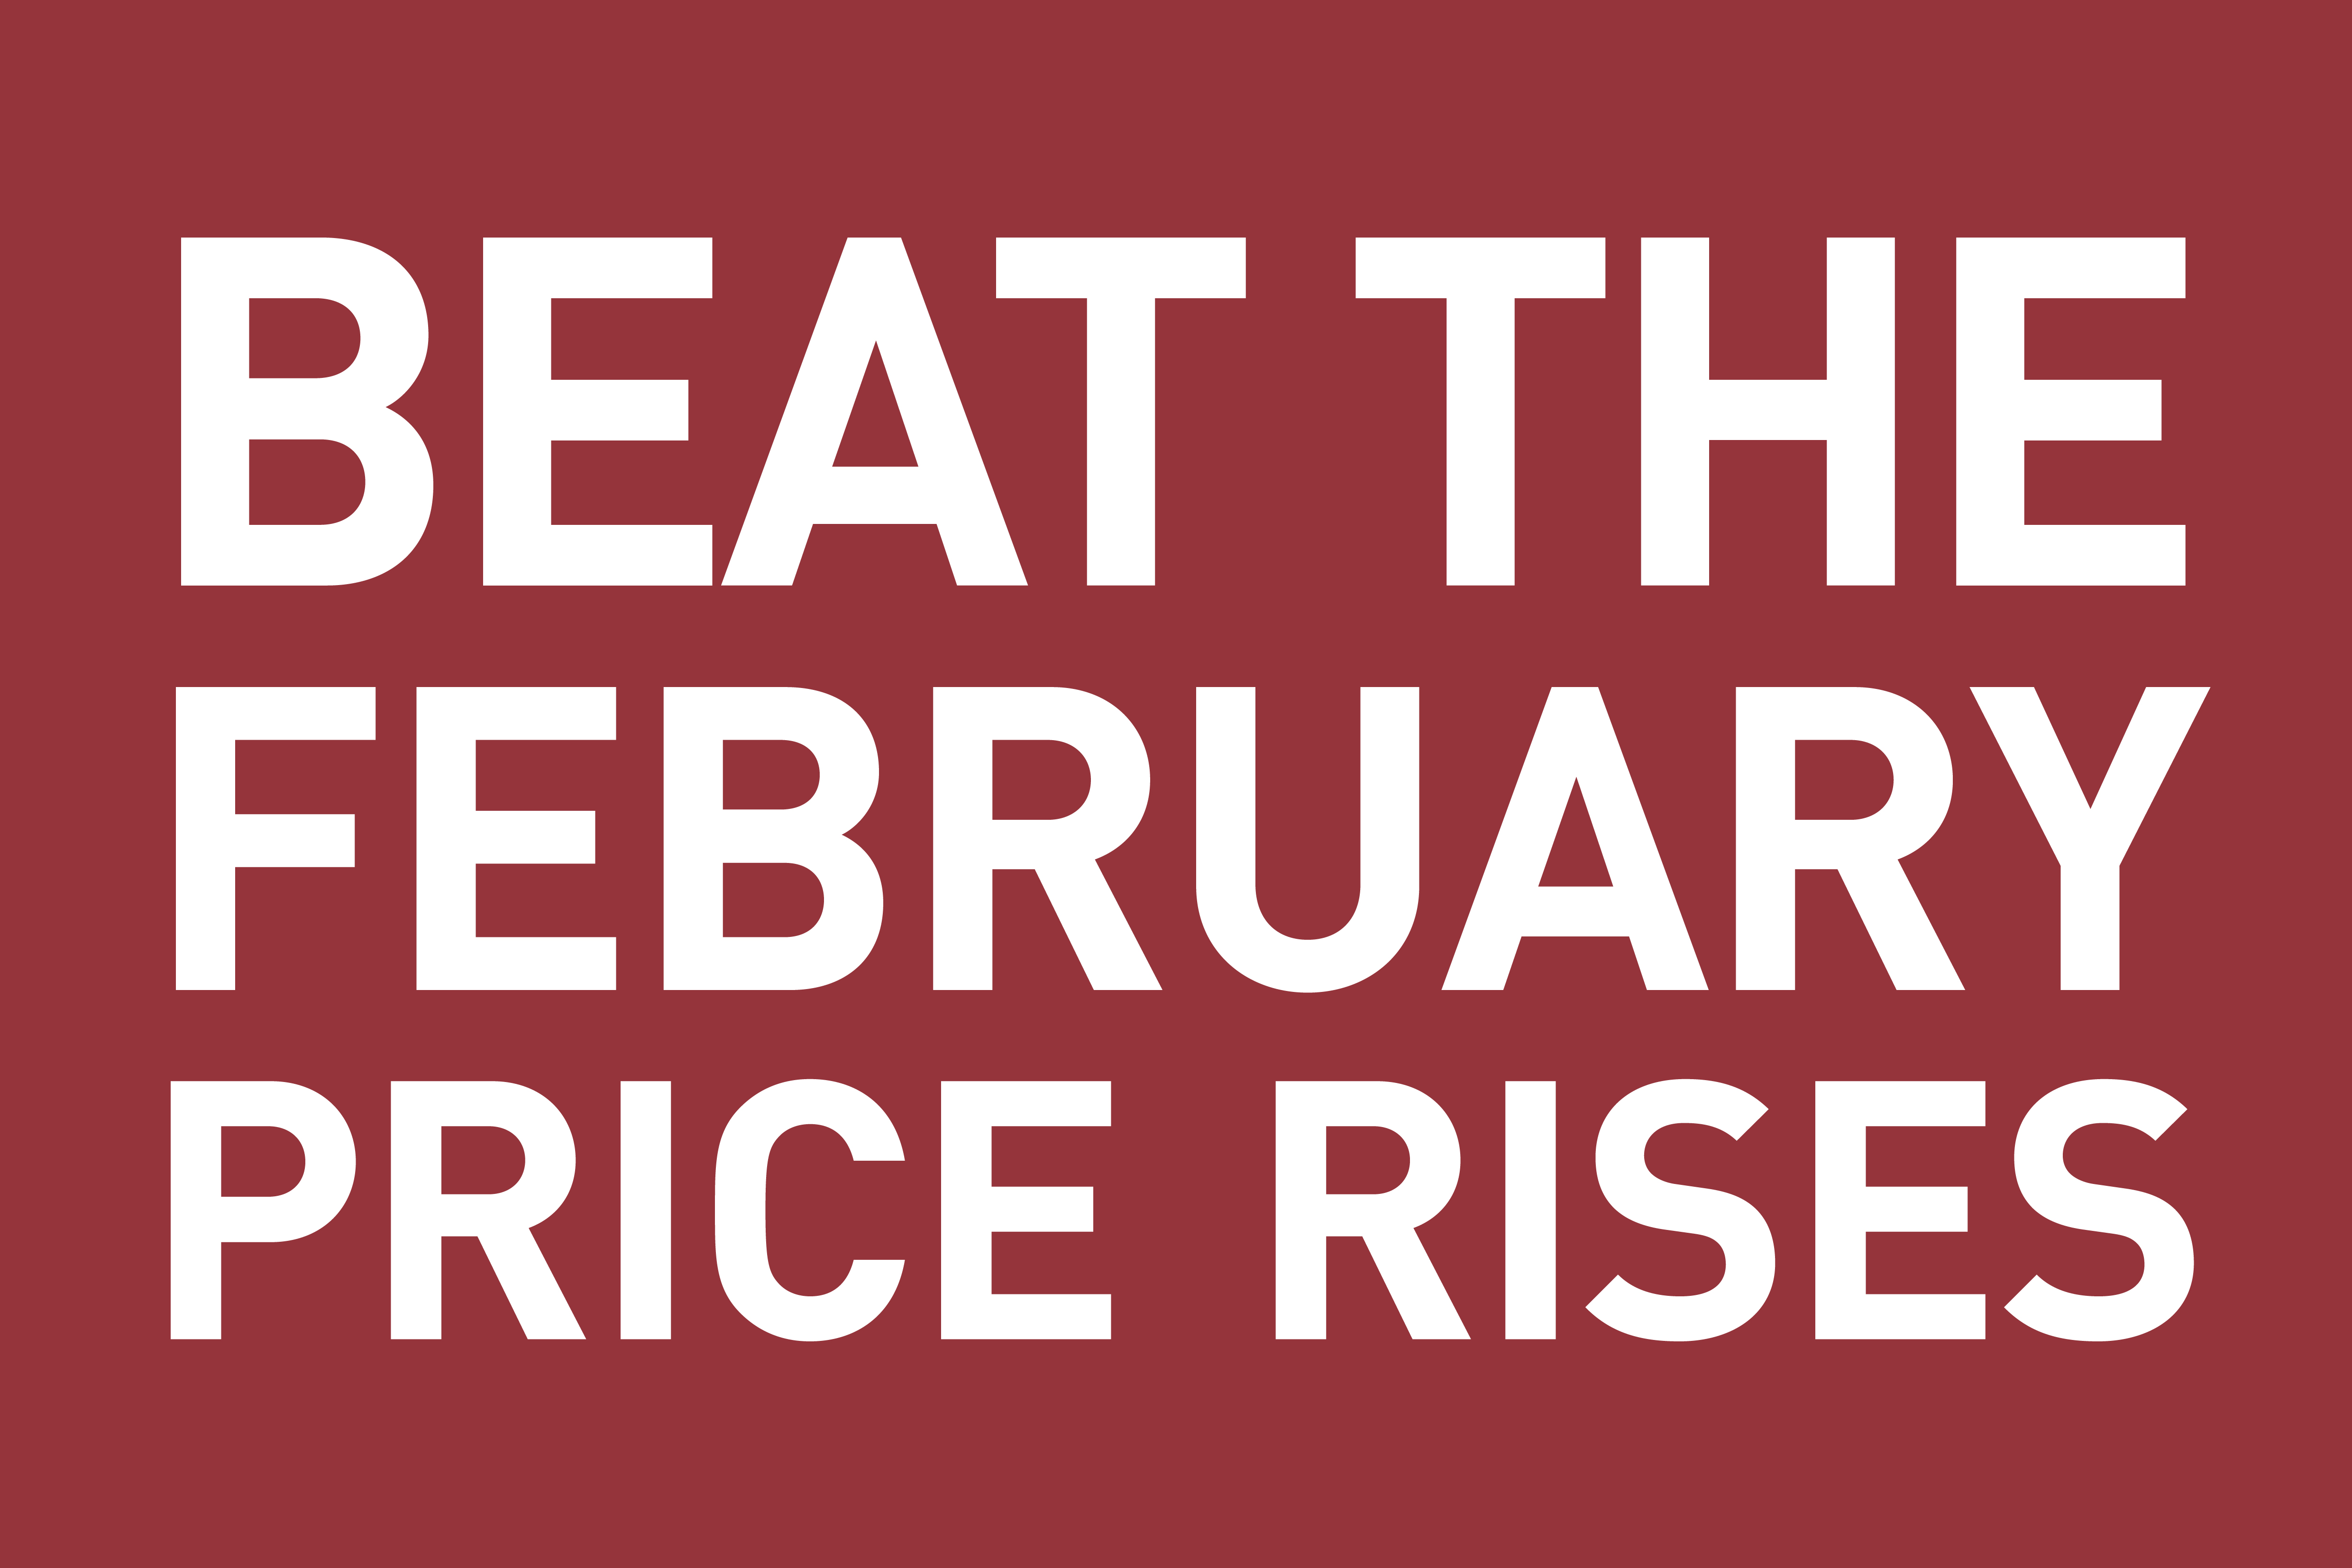 Feb price rises